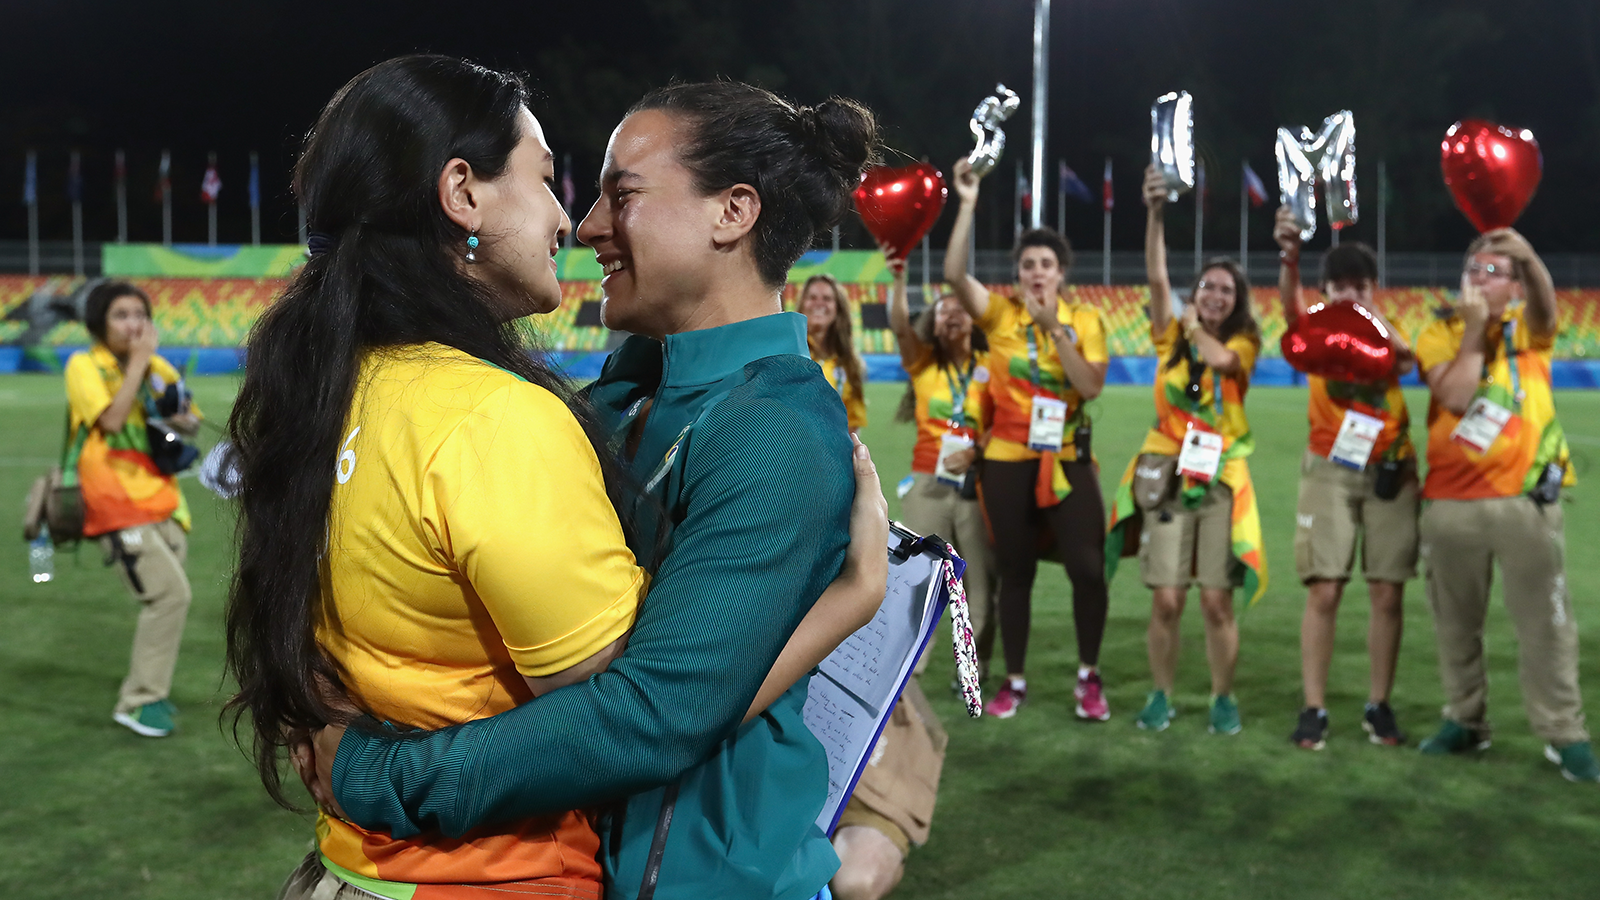 Brazil rugby; Proposal; Engagement; Olympics